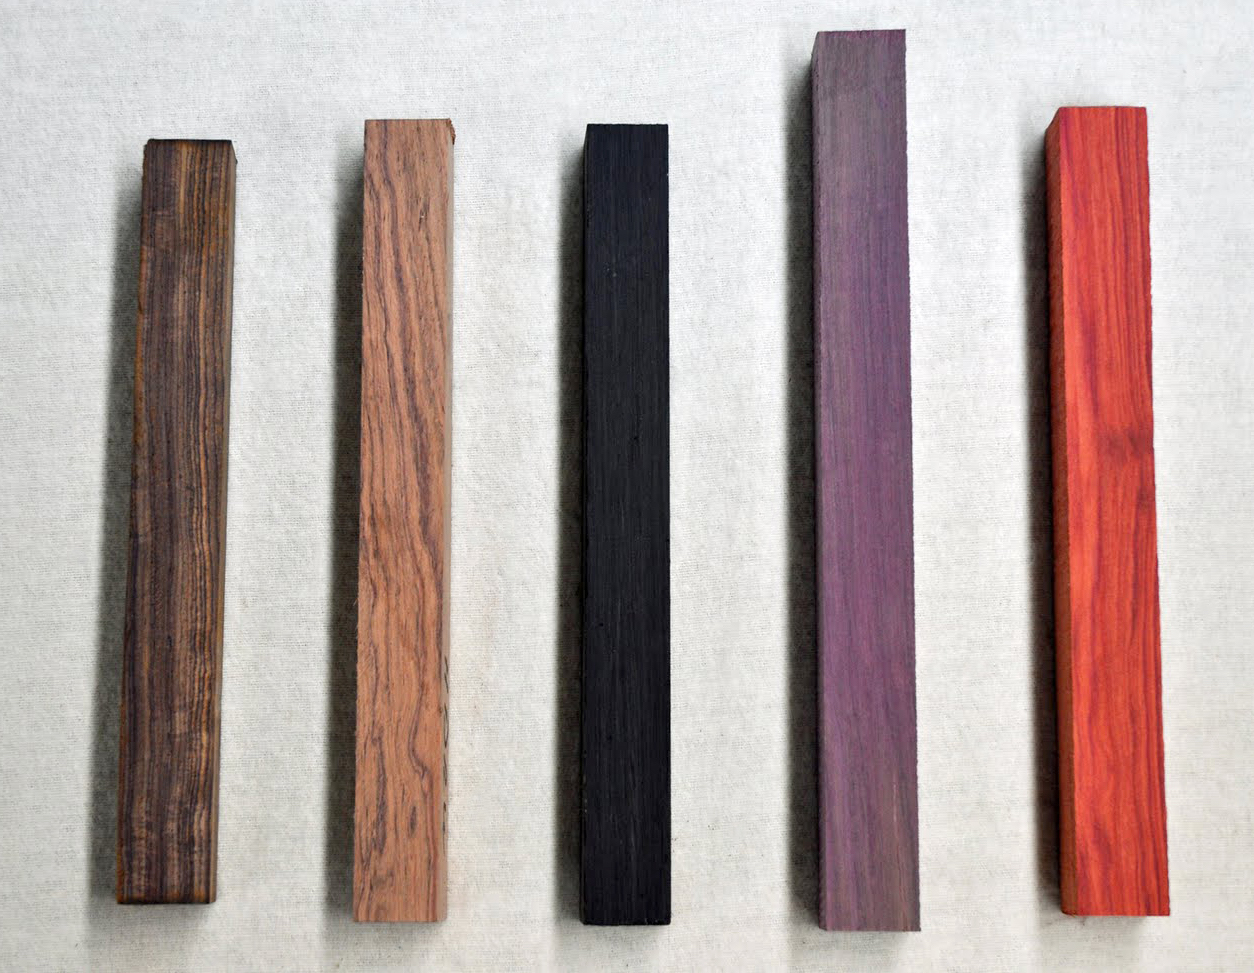 (left to right) Cocobolo, Honduran Rosewood, African Blackwood, Purple Heart, Bloodwood